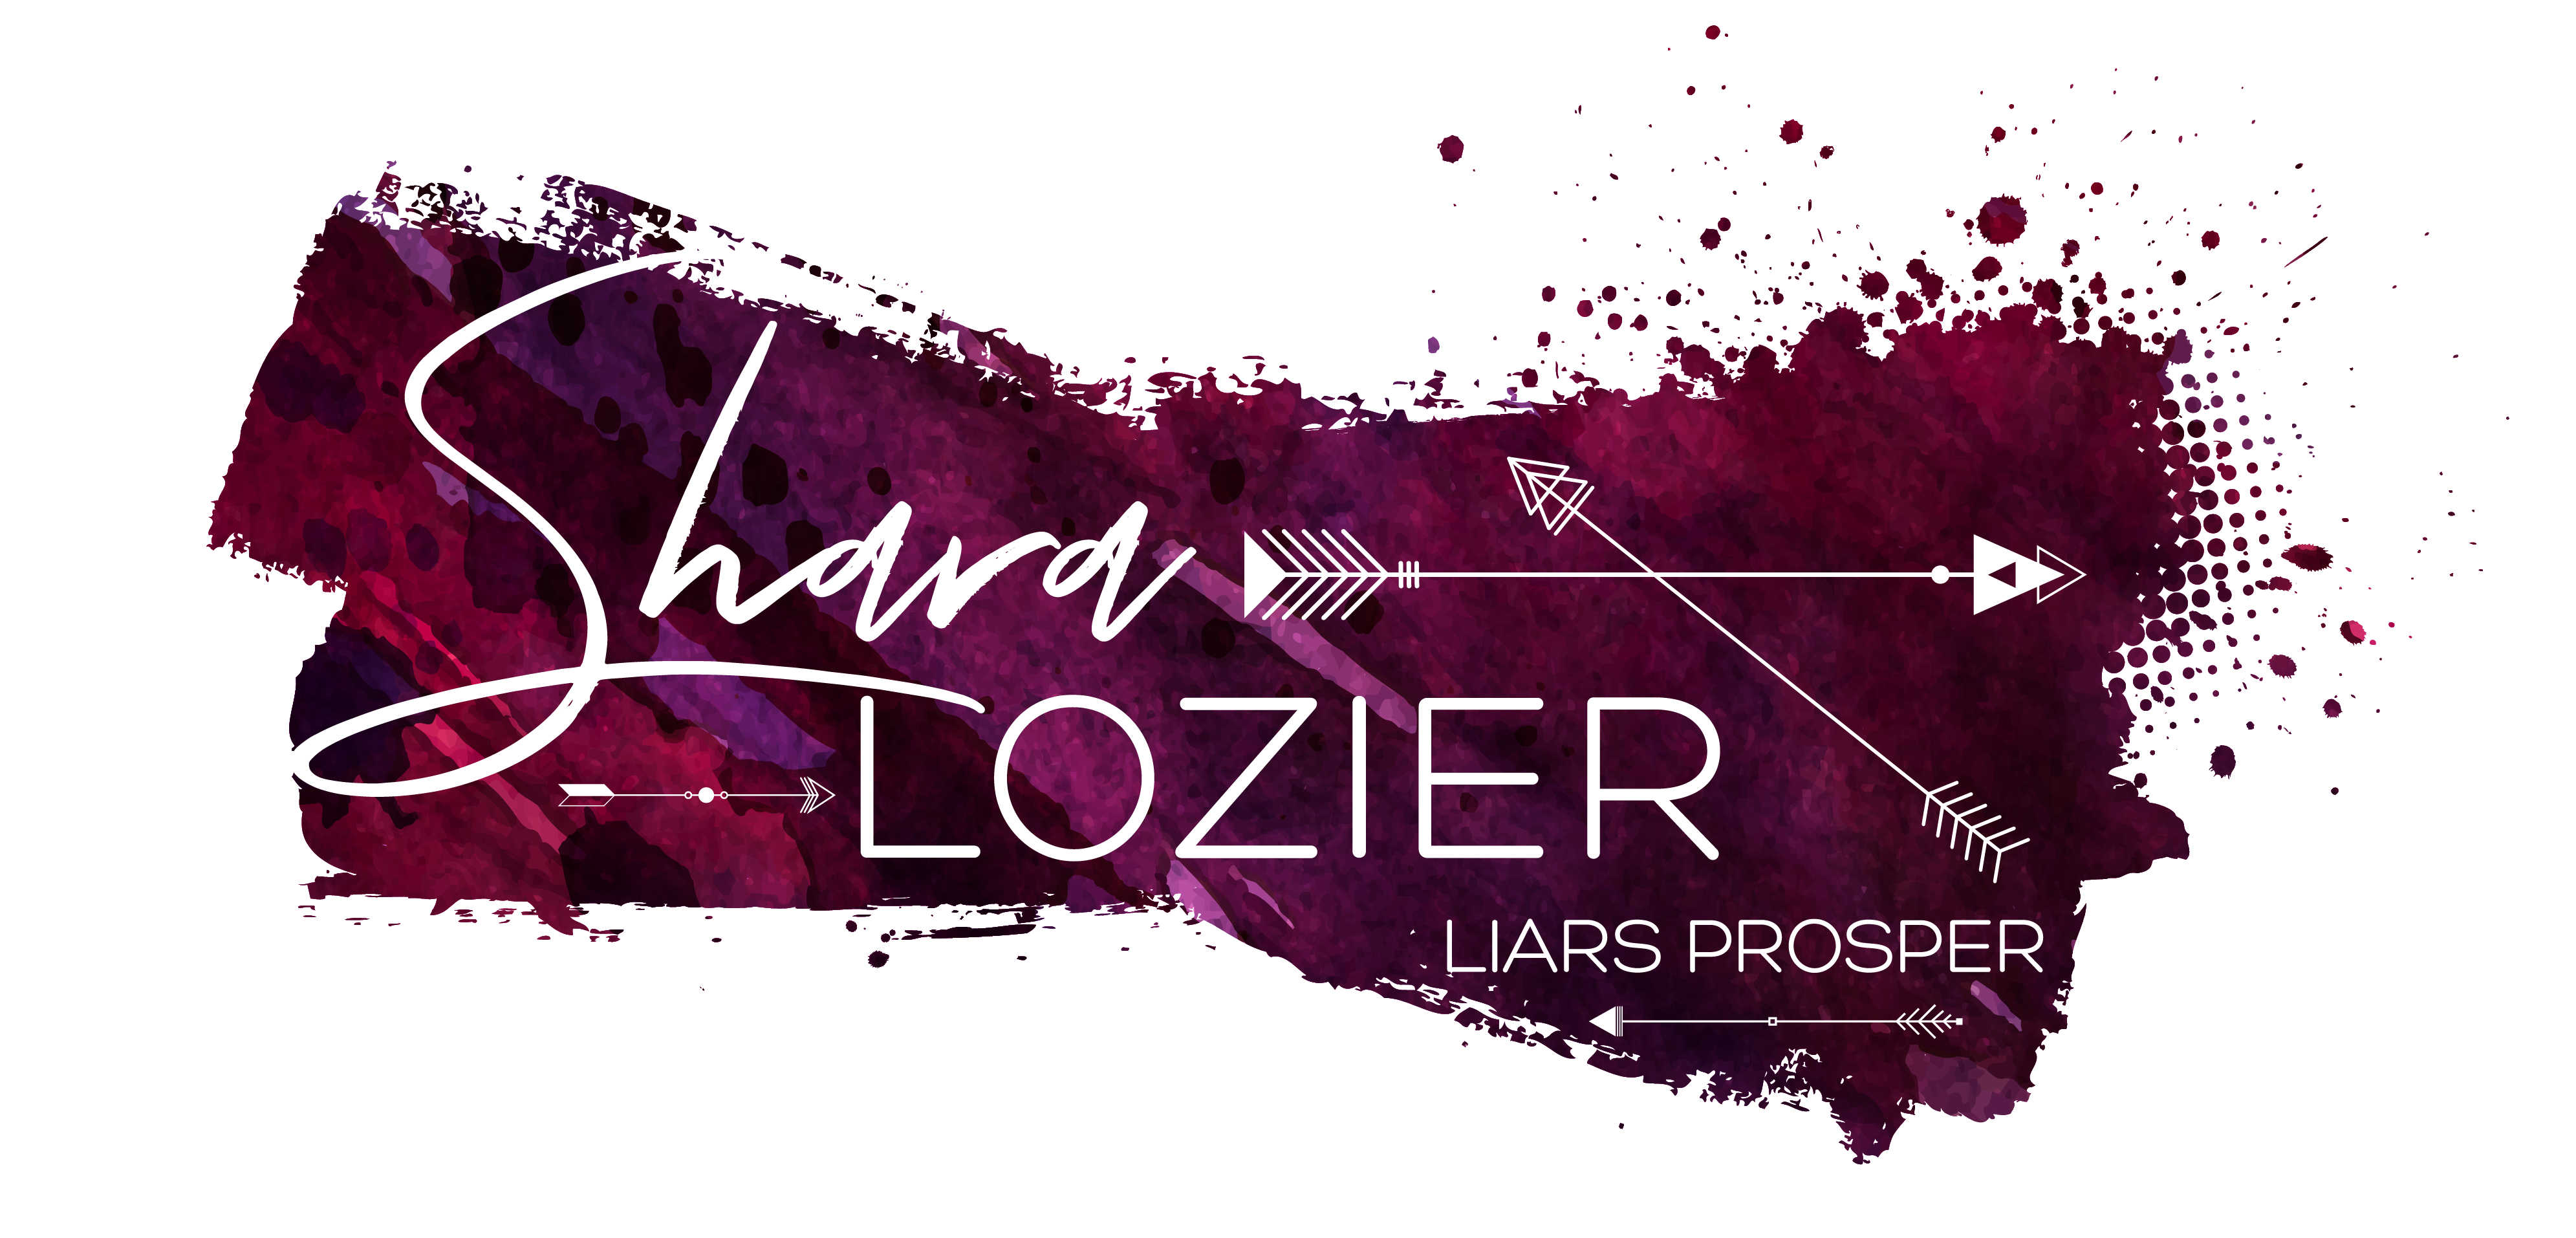 Author Shara Lozier